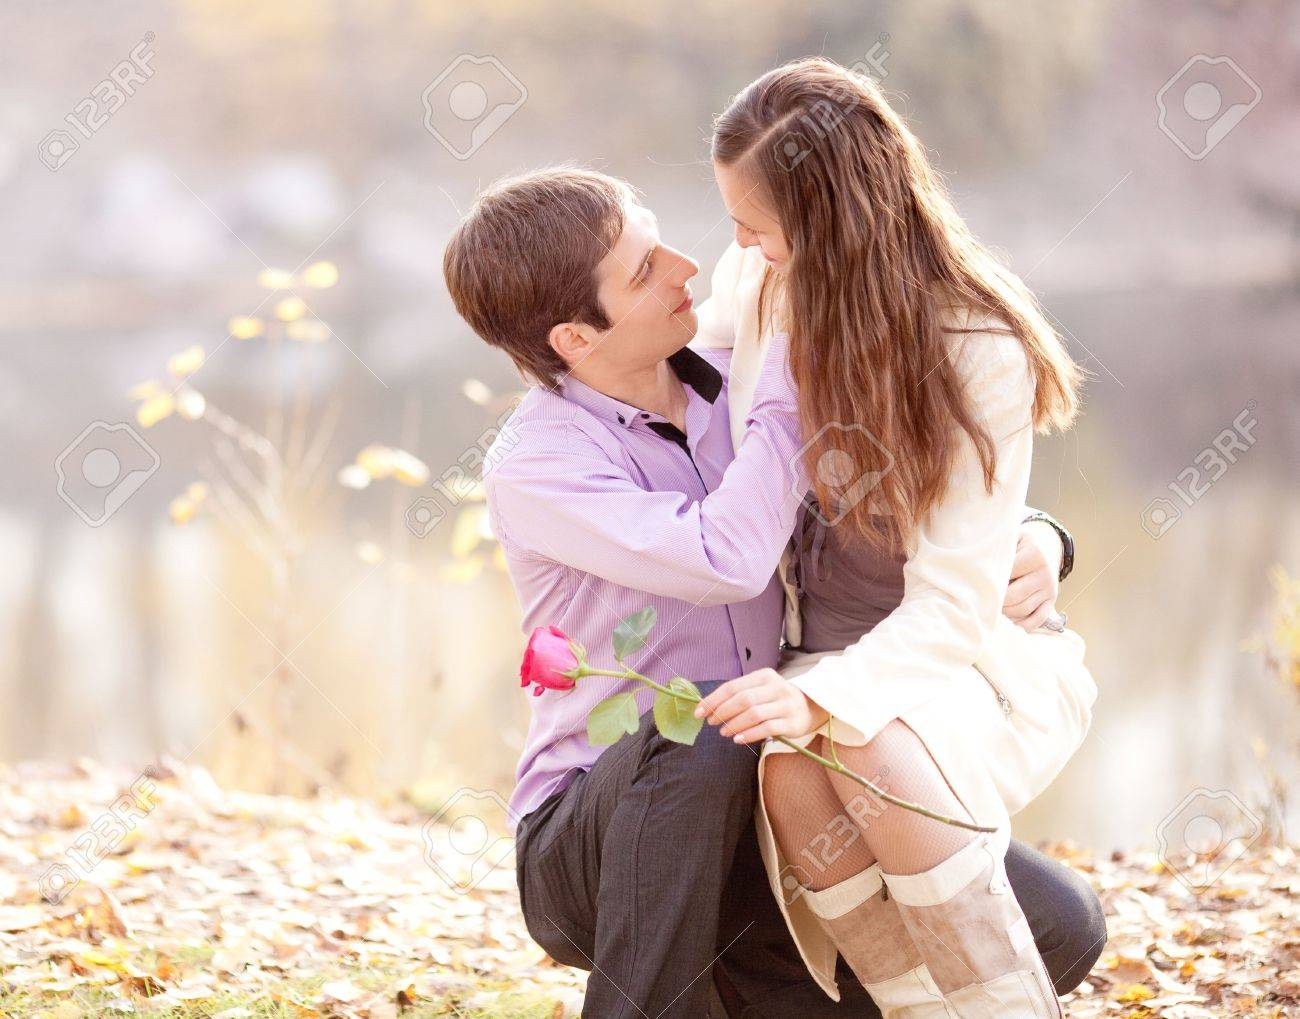 happy young couple spending time outdoor in the autumn park Stock Photo - 12714417